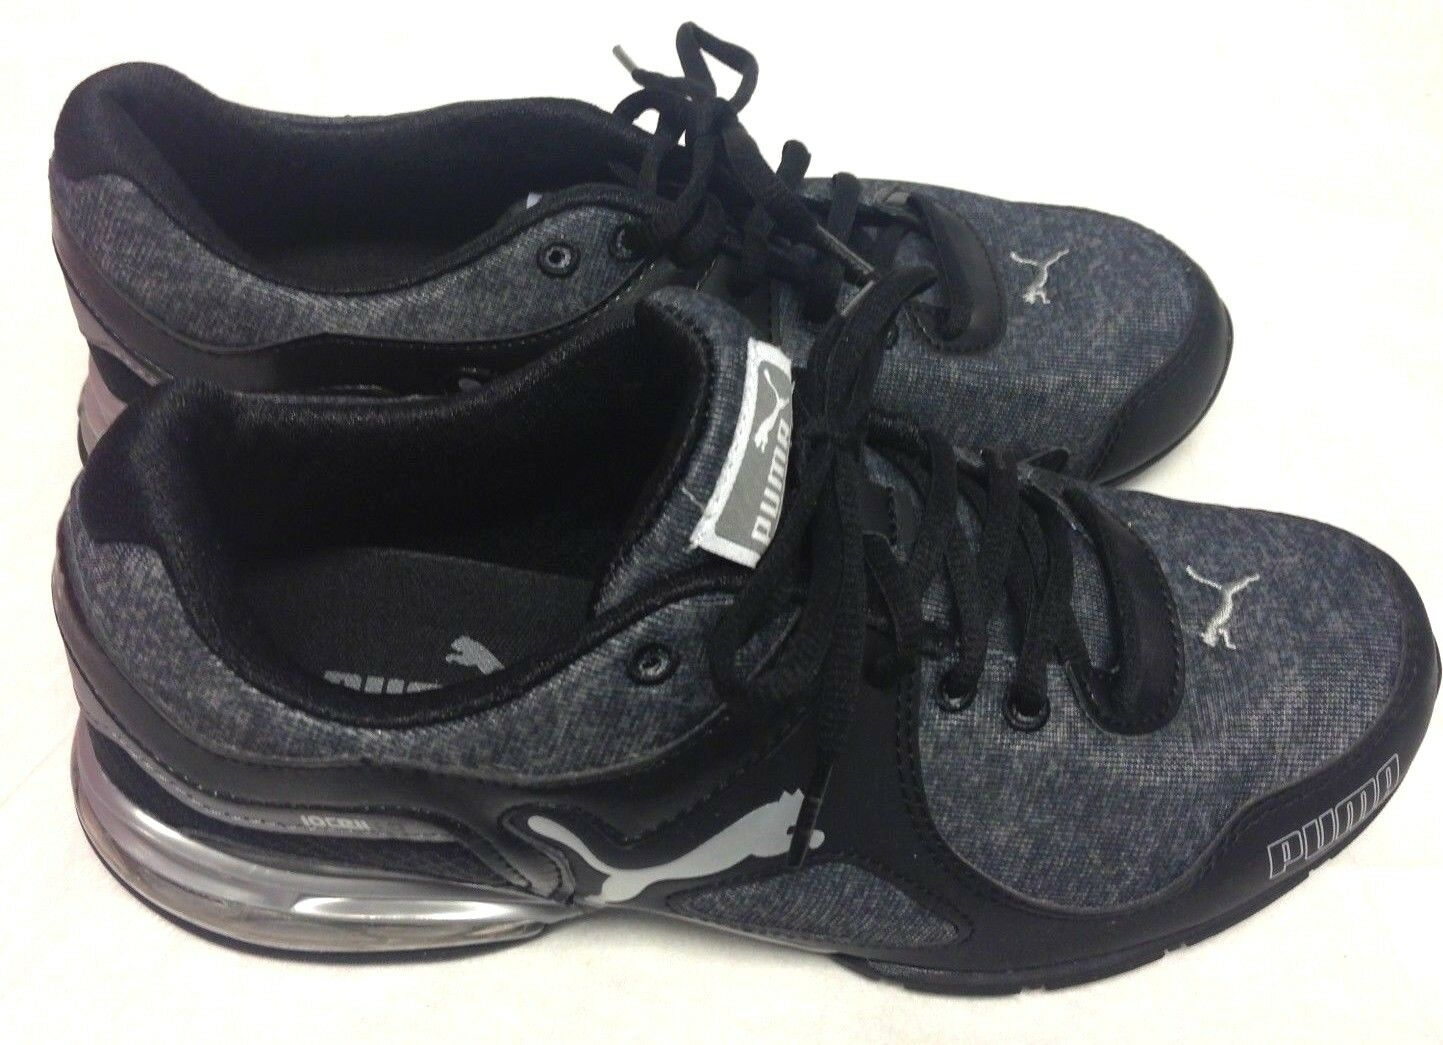 PUMA Women's Cell Riaz Athletic Running Shoe Black/Gray 191429 02 Price reduction Seasonal price cuts, discount benefits